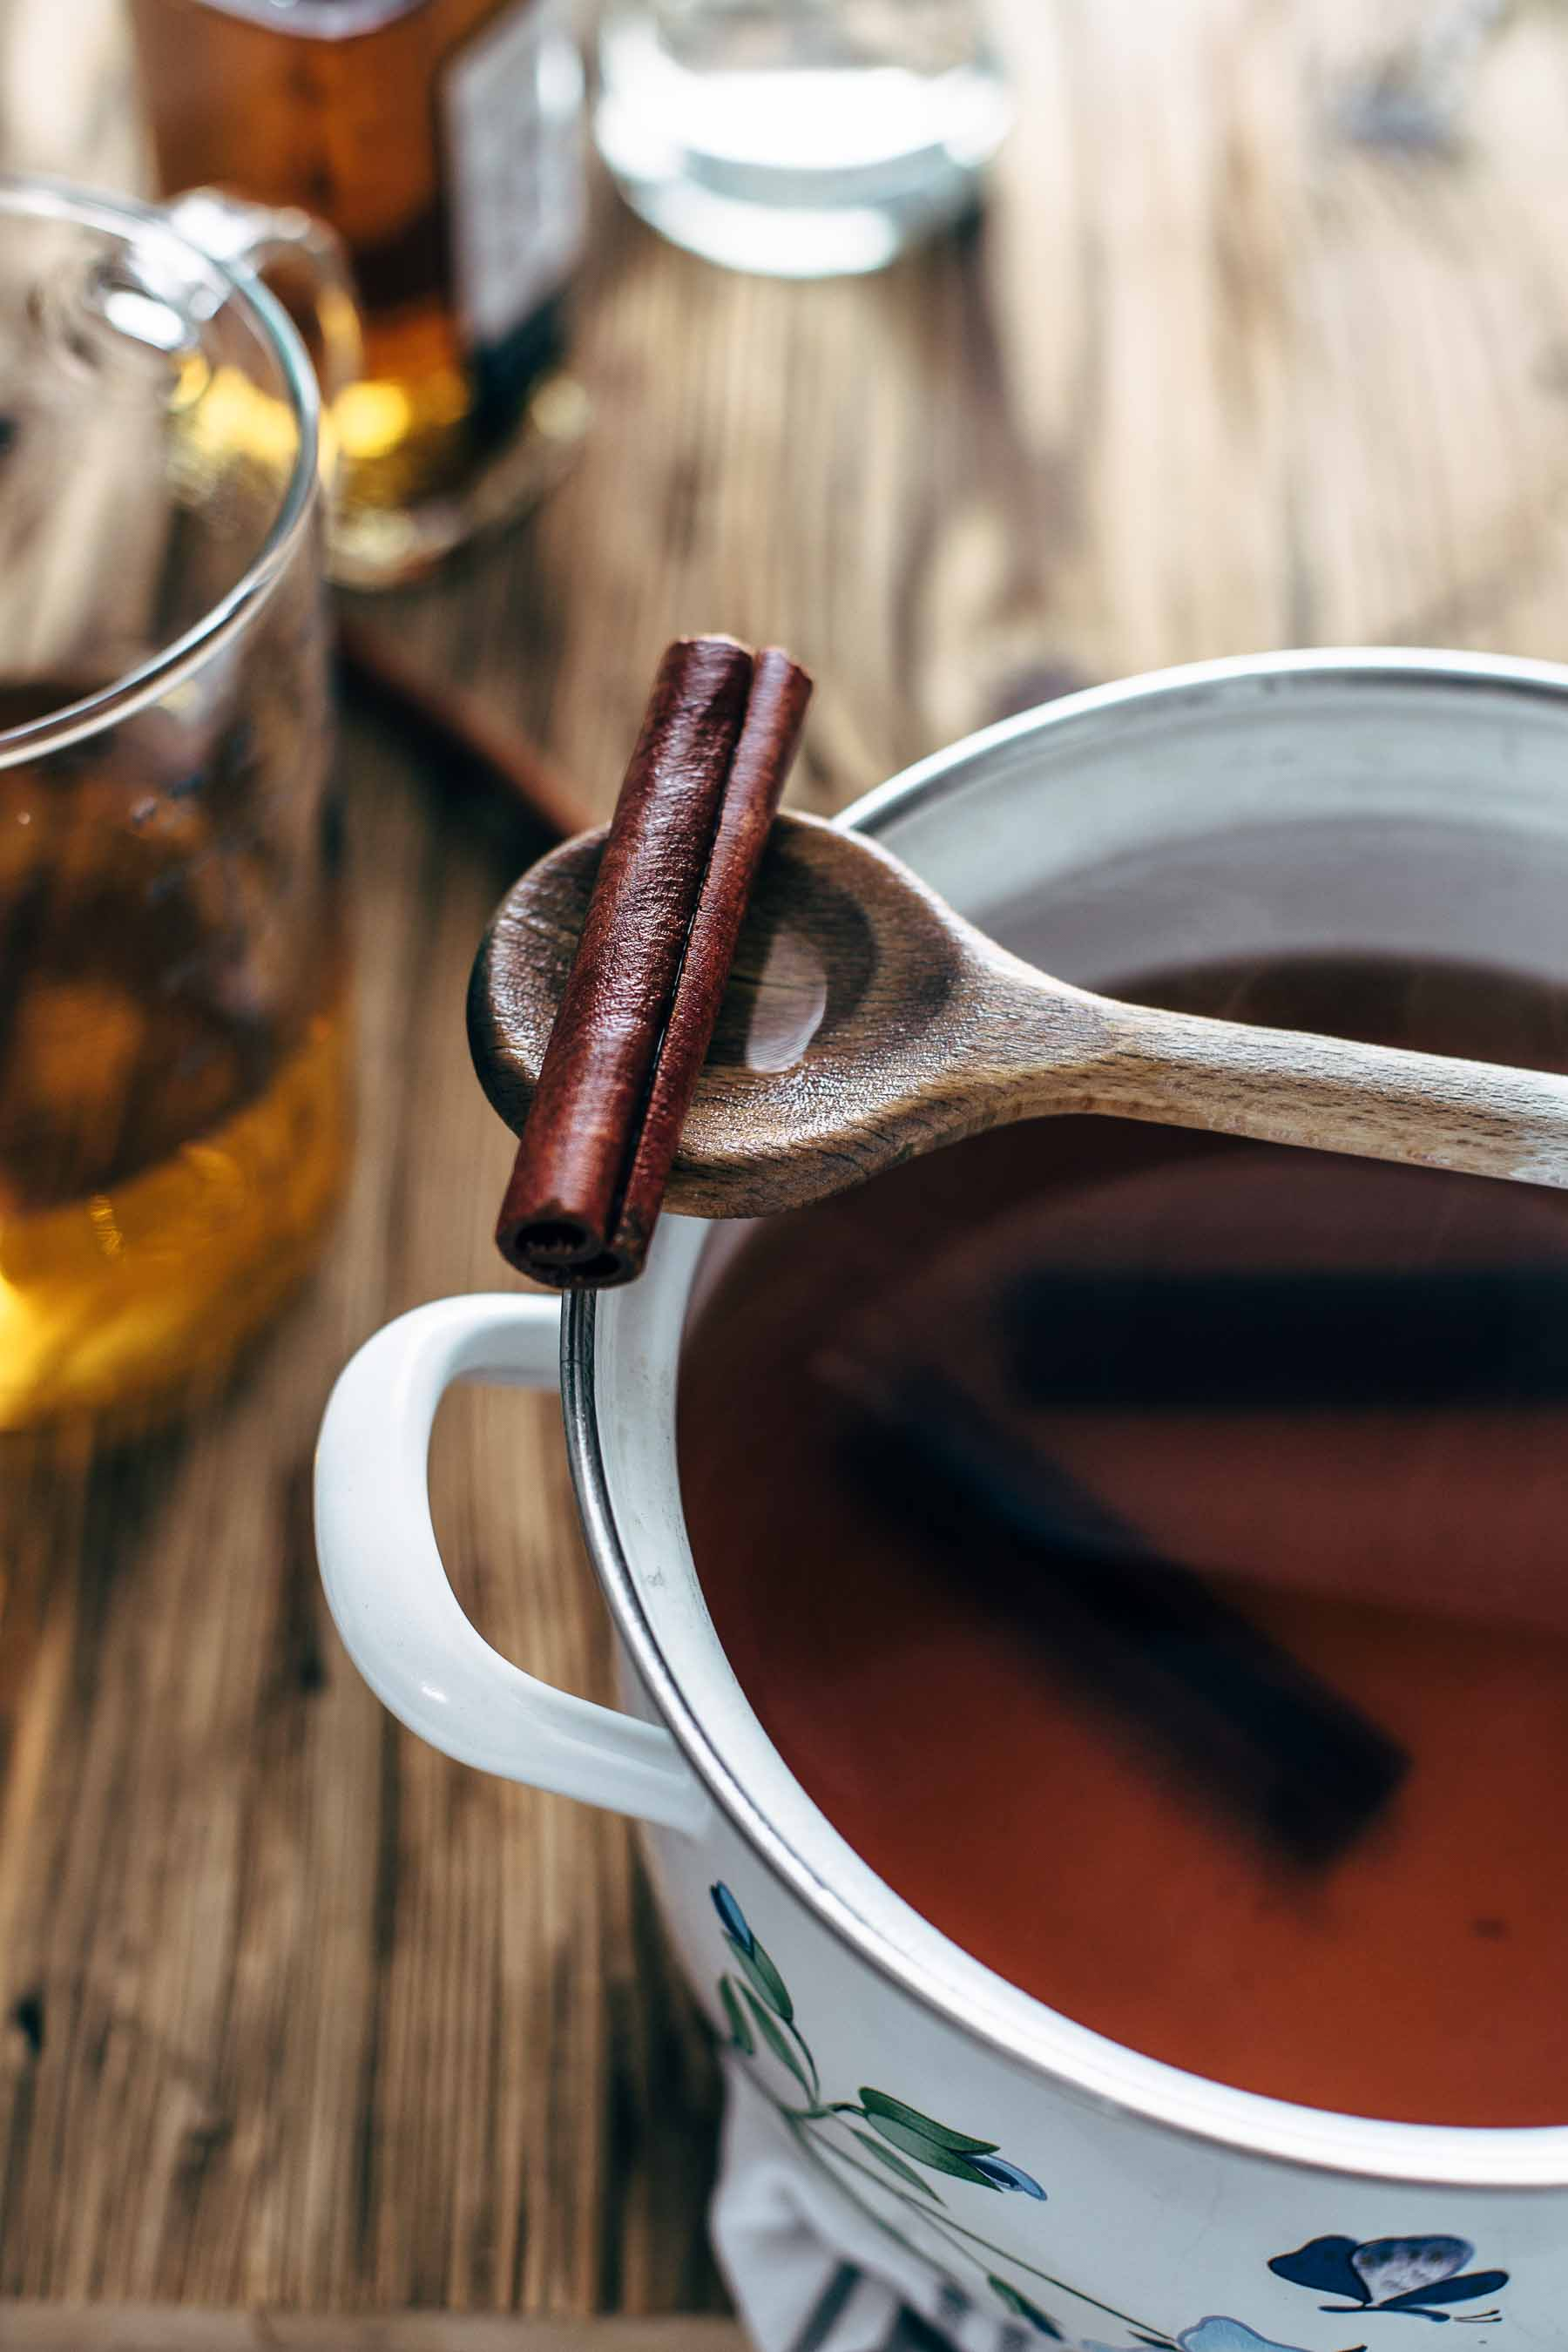 A wooden spoon with a cinnamon stick, sitting on top of a pot of hot toddy beverage